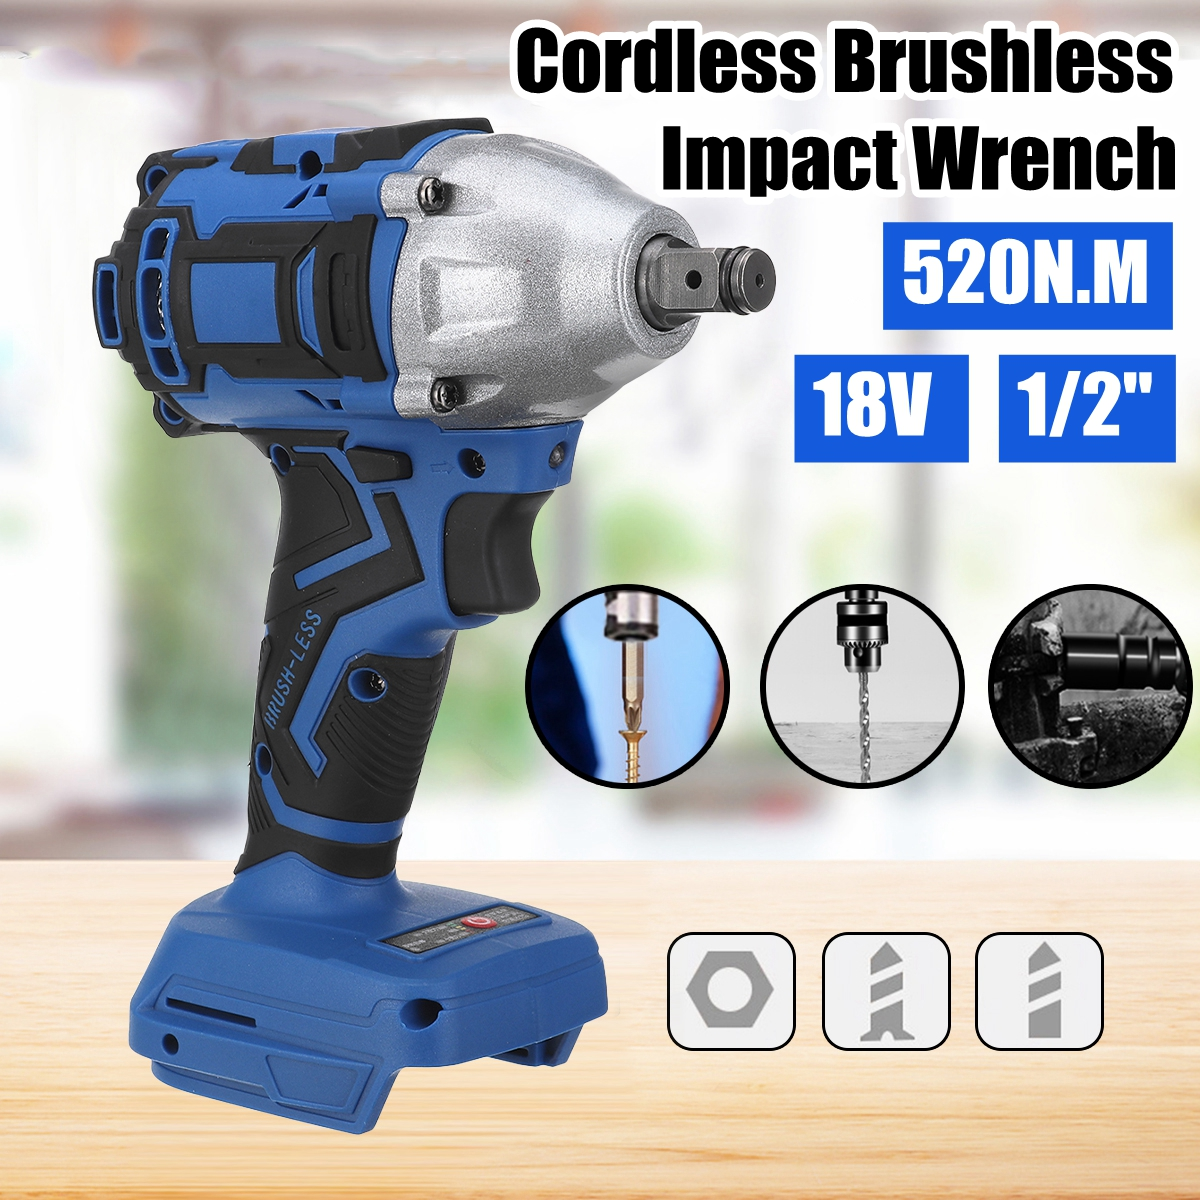 18V Brushless Electric Wrench Impact Socket Wrench 520Nm For Makita Battery Hand Drill Installation 1 2 Socket Wrench Power Tool